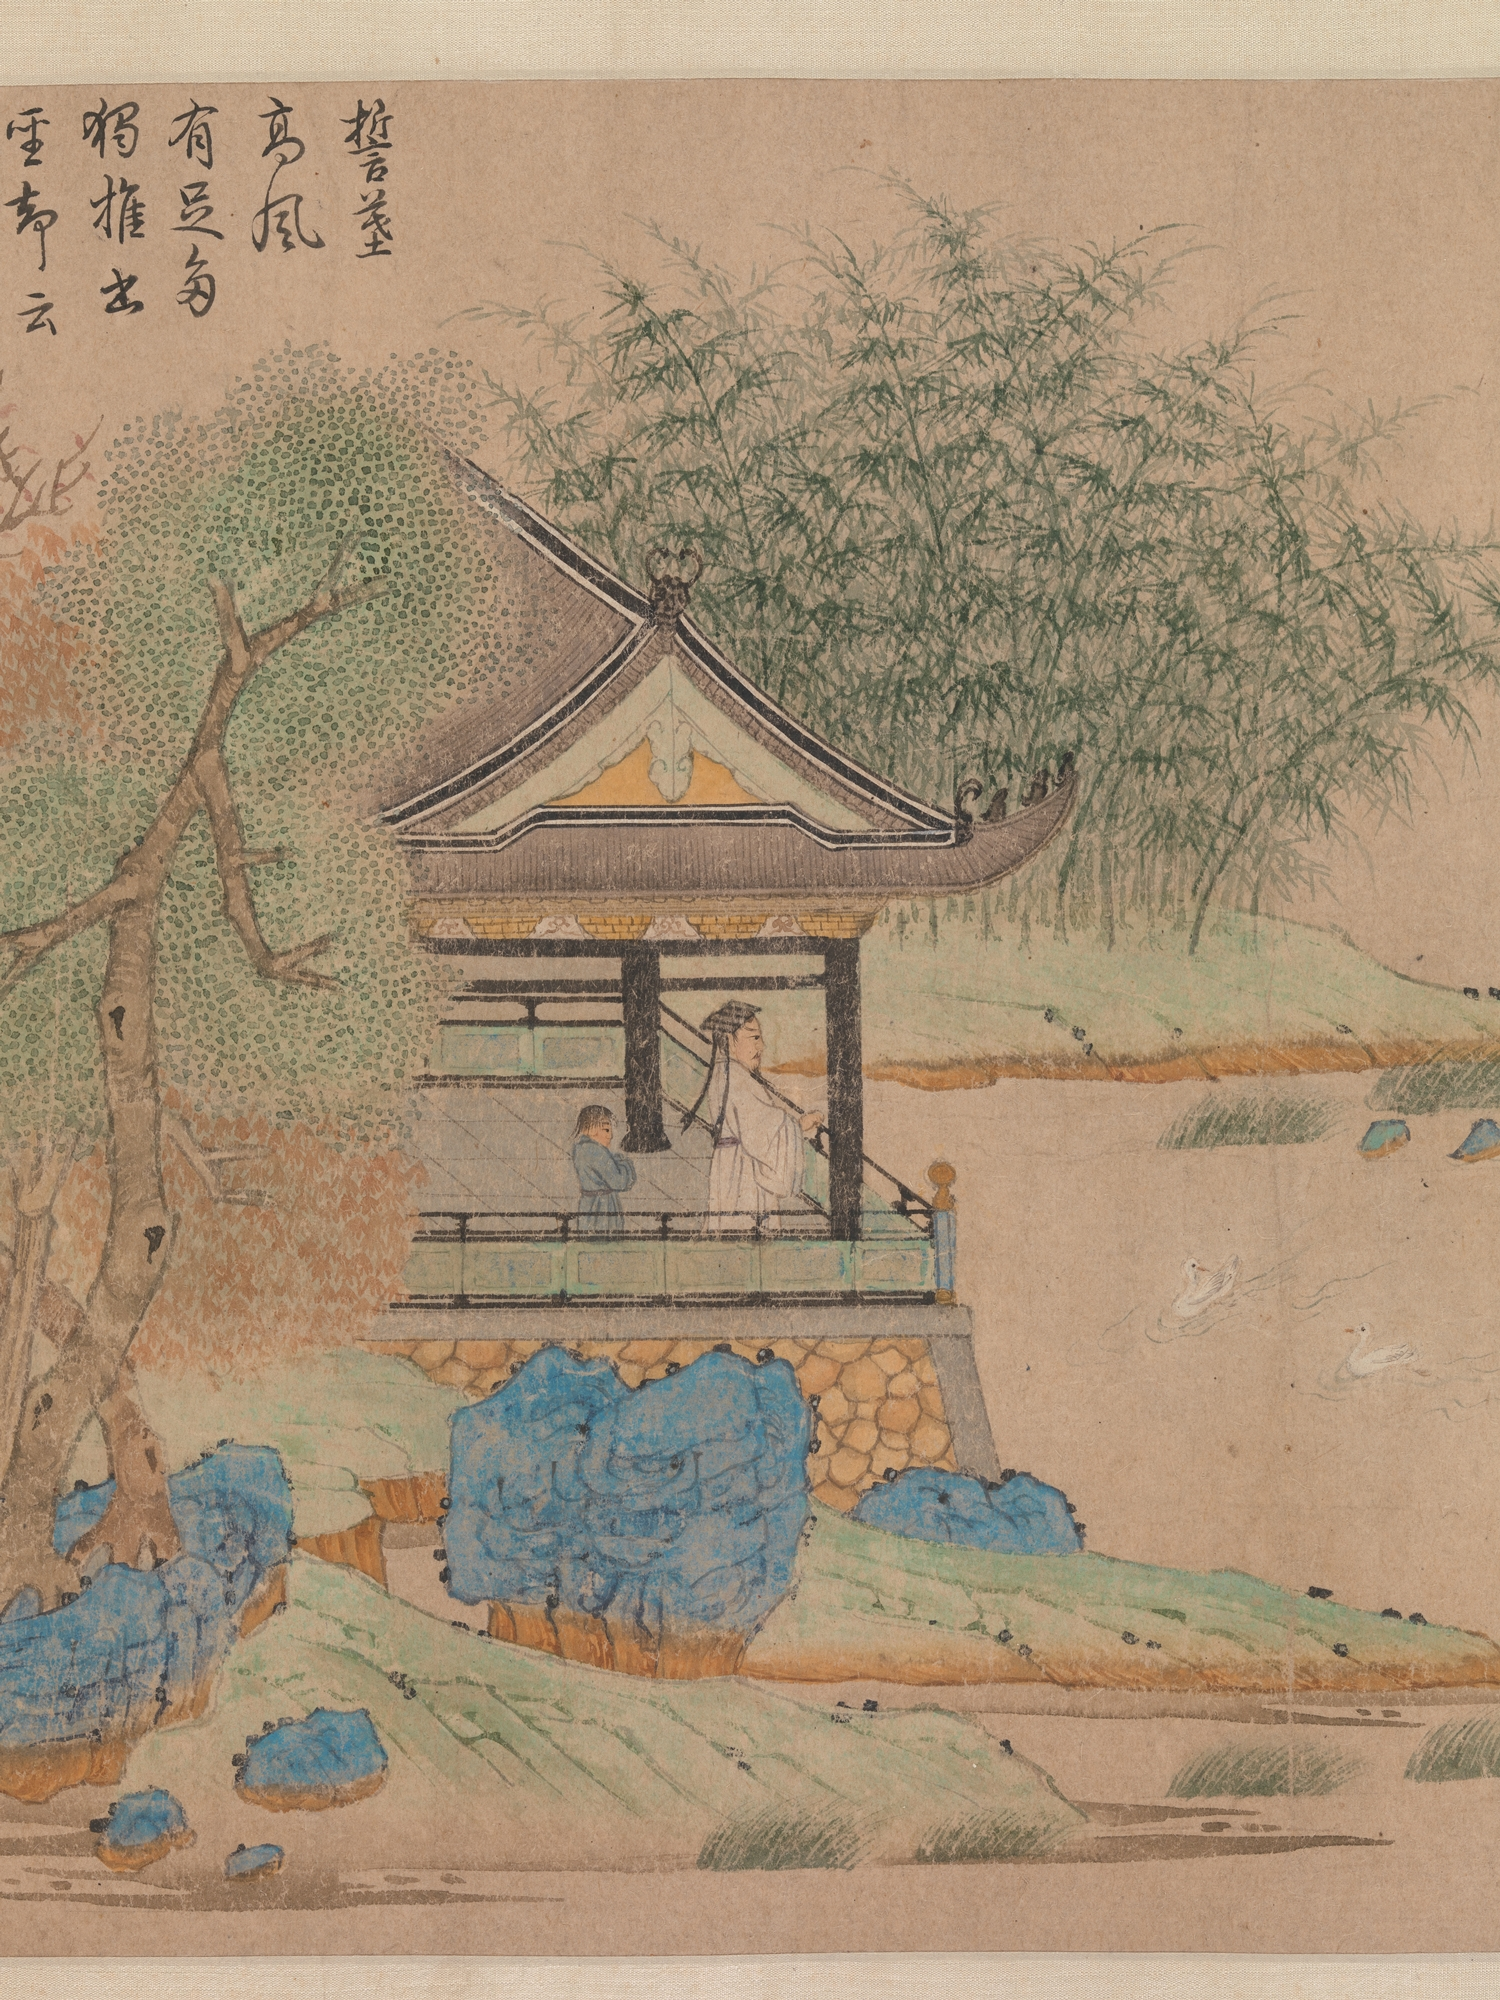 """."""" Words and images: Chinese poetry, Calligraphy, and Paiting """". Qian Xuan, """"Wang Xizhi che osserva le oche"""", 1295 circa"""